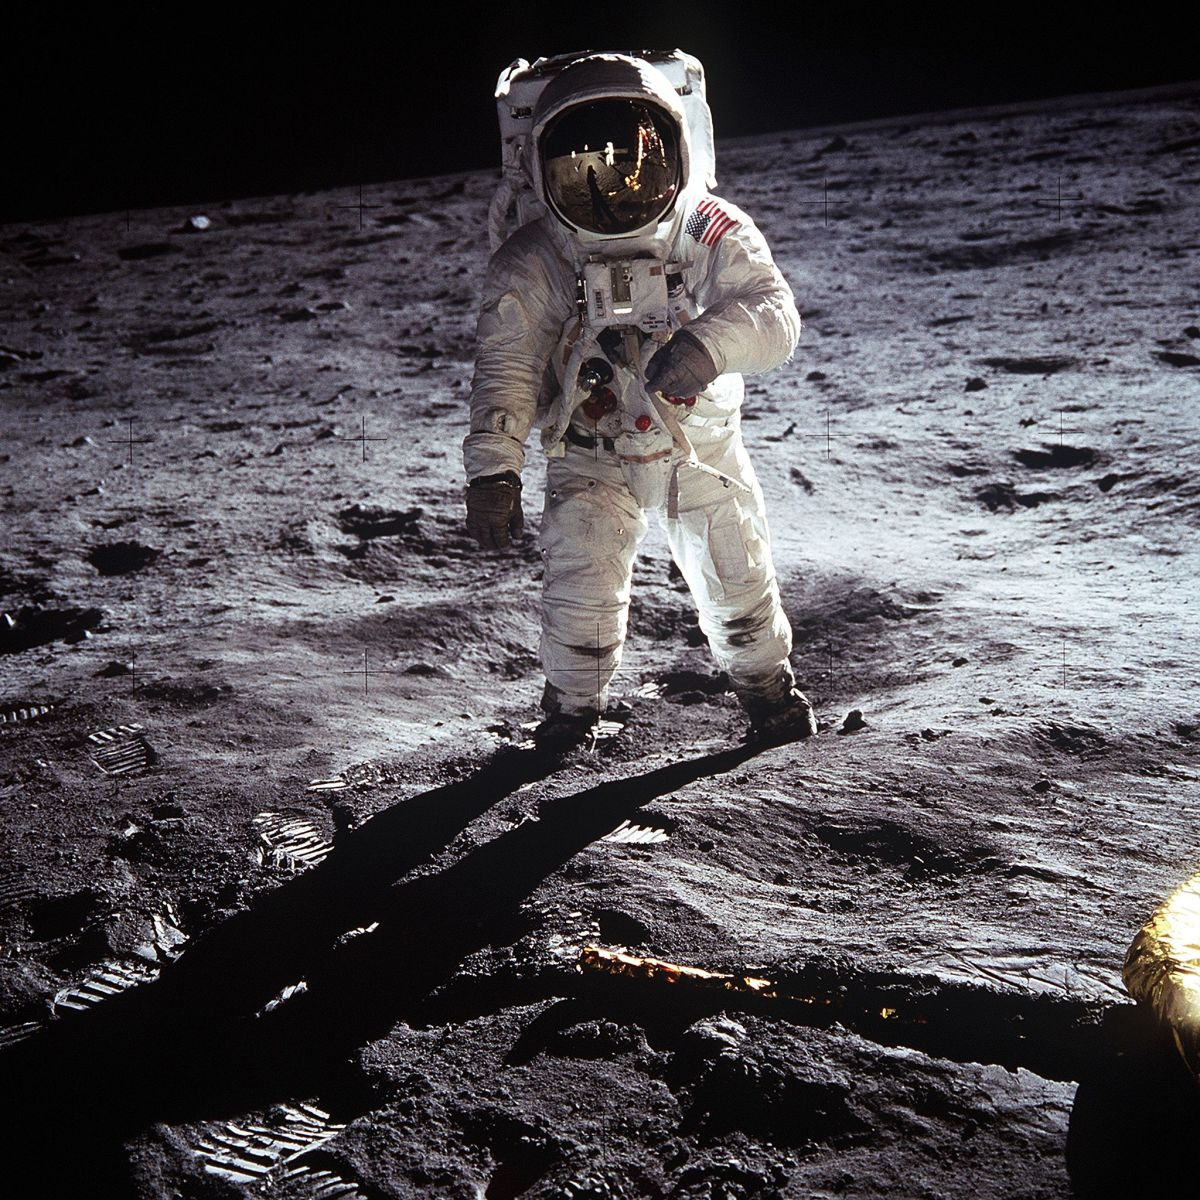 50th Anniversary of the Apollo 11 Moon Landing